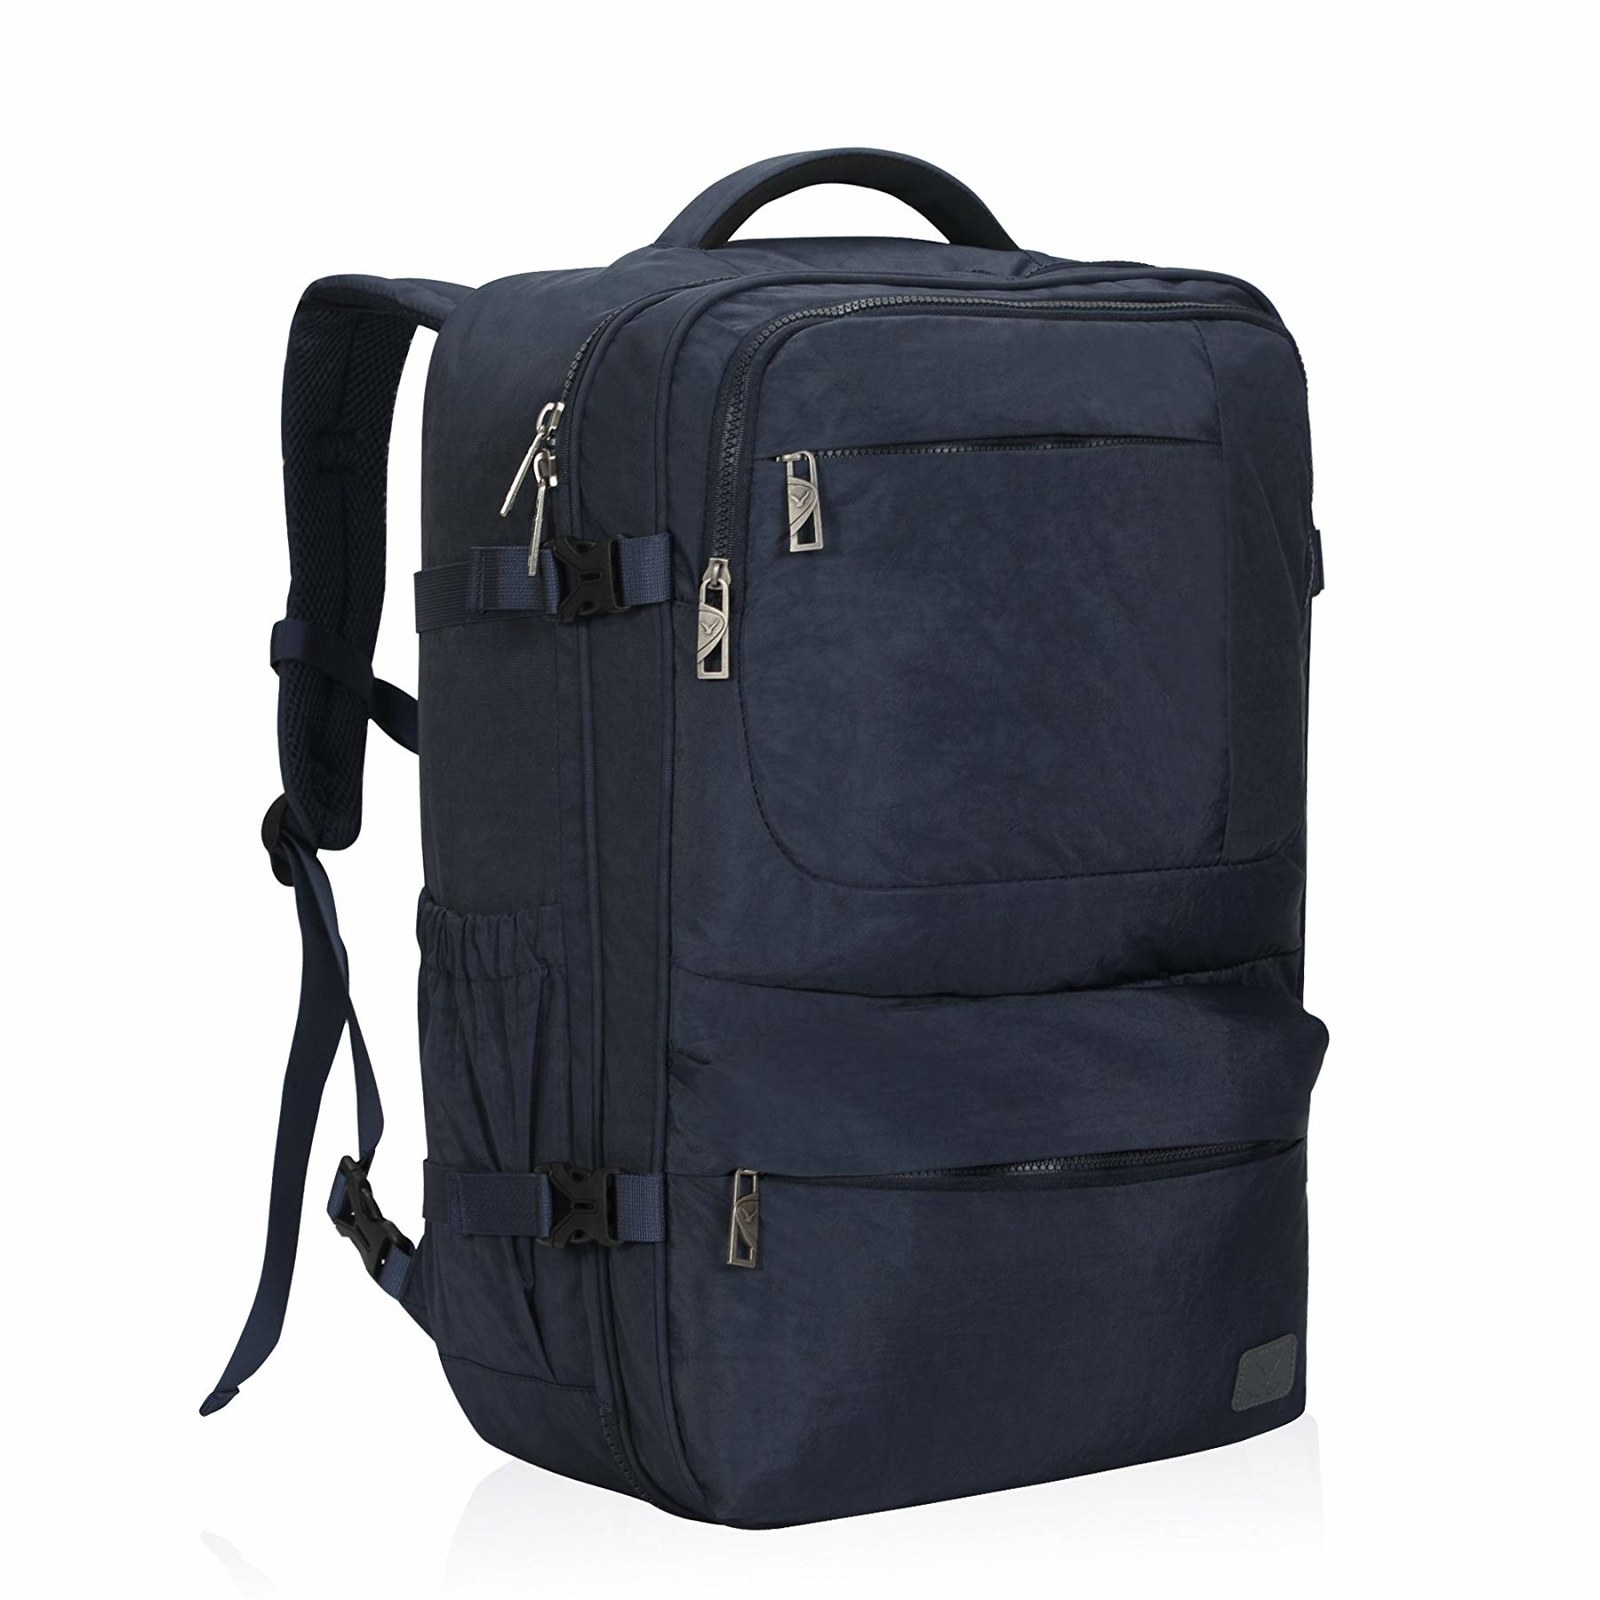 ab77290d642 29 Products For People Who Refuse To Ever Check A Bag